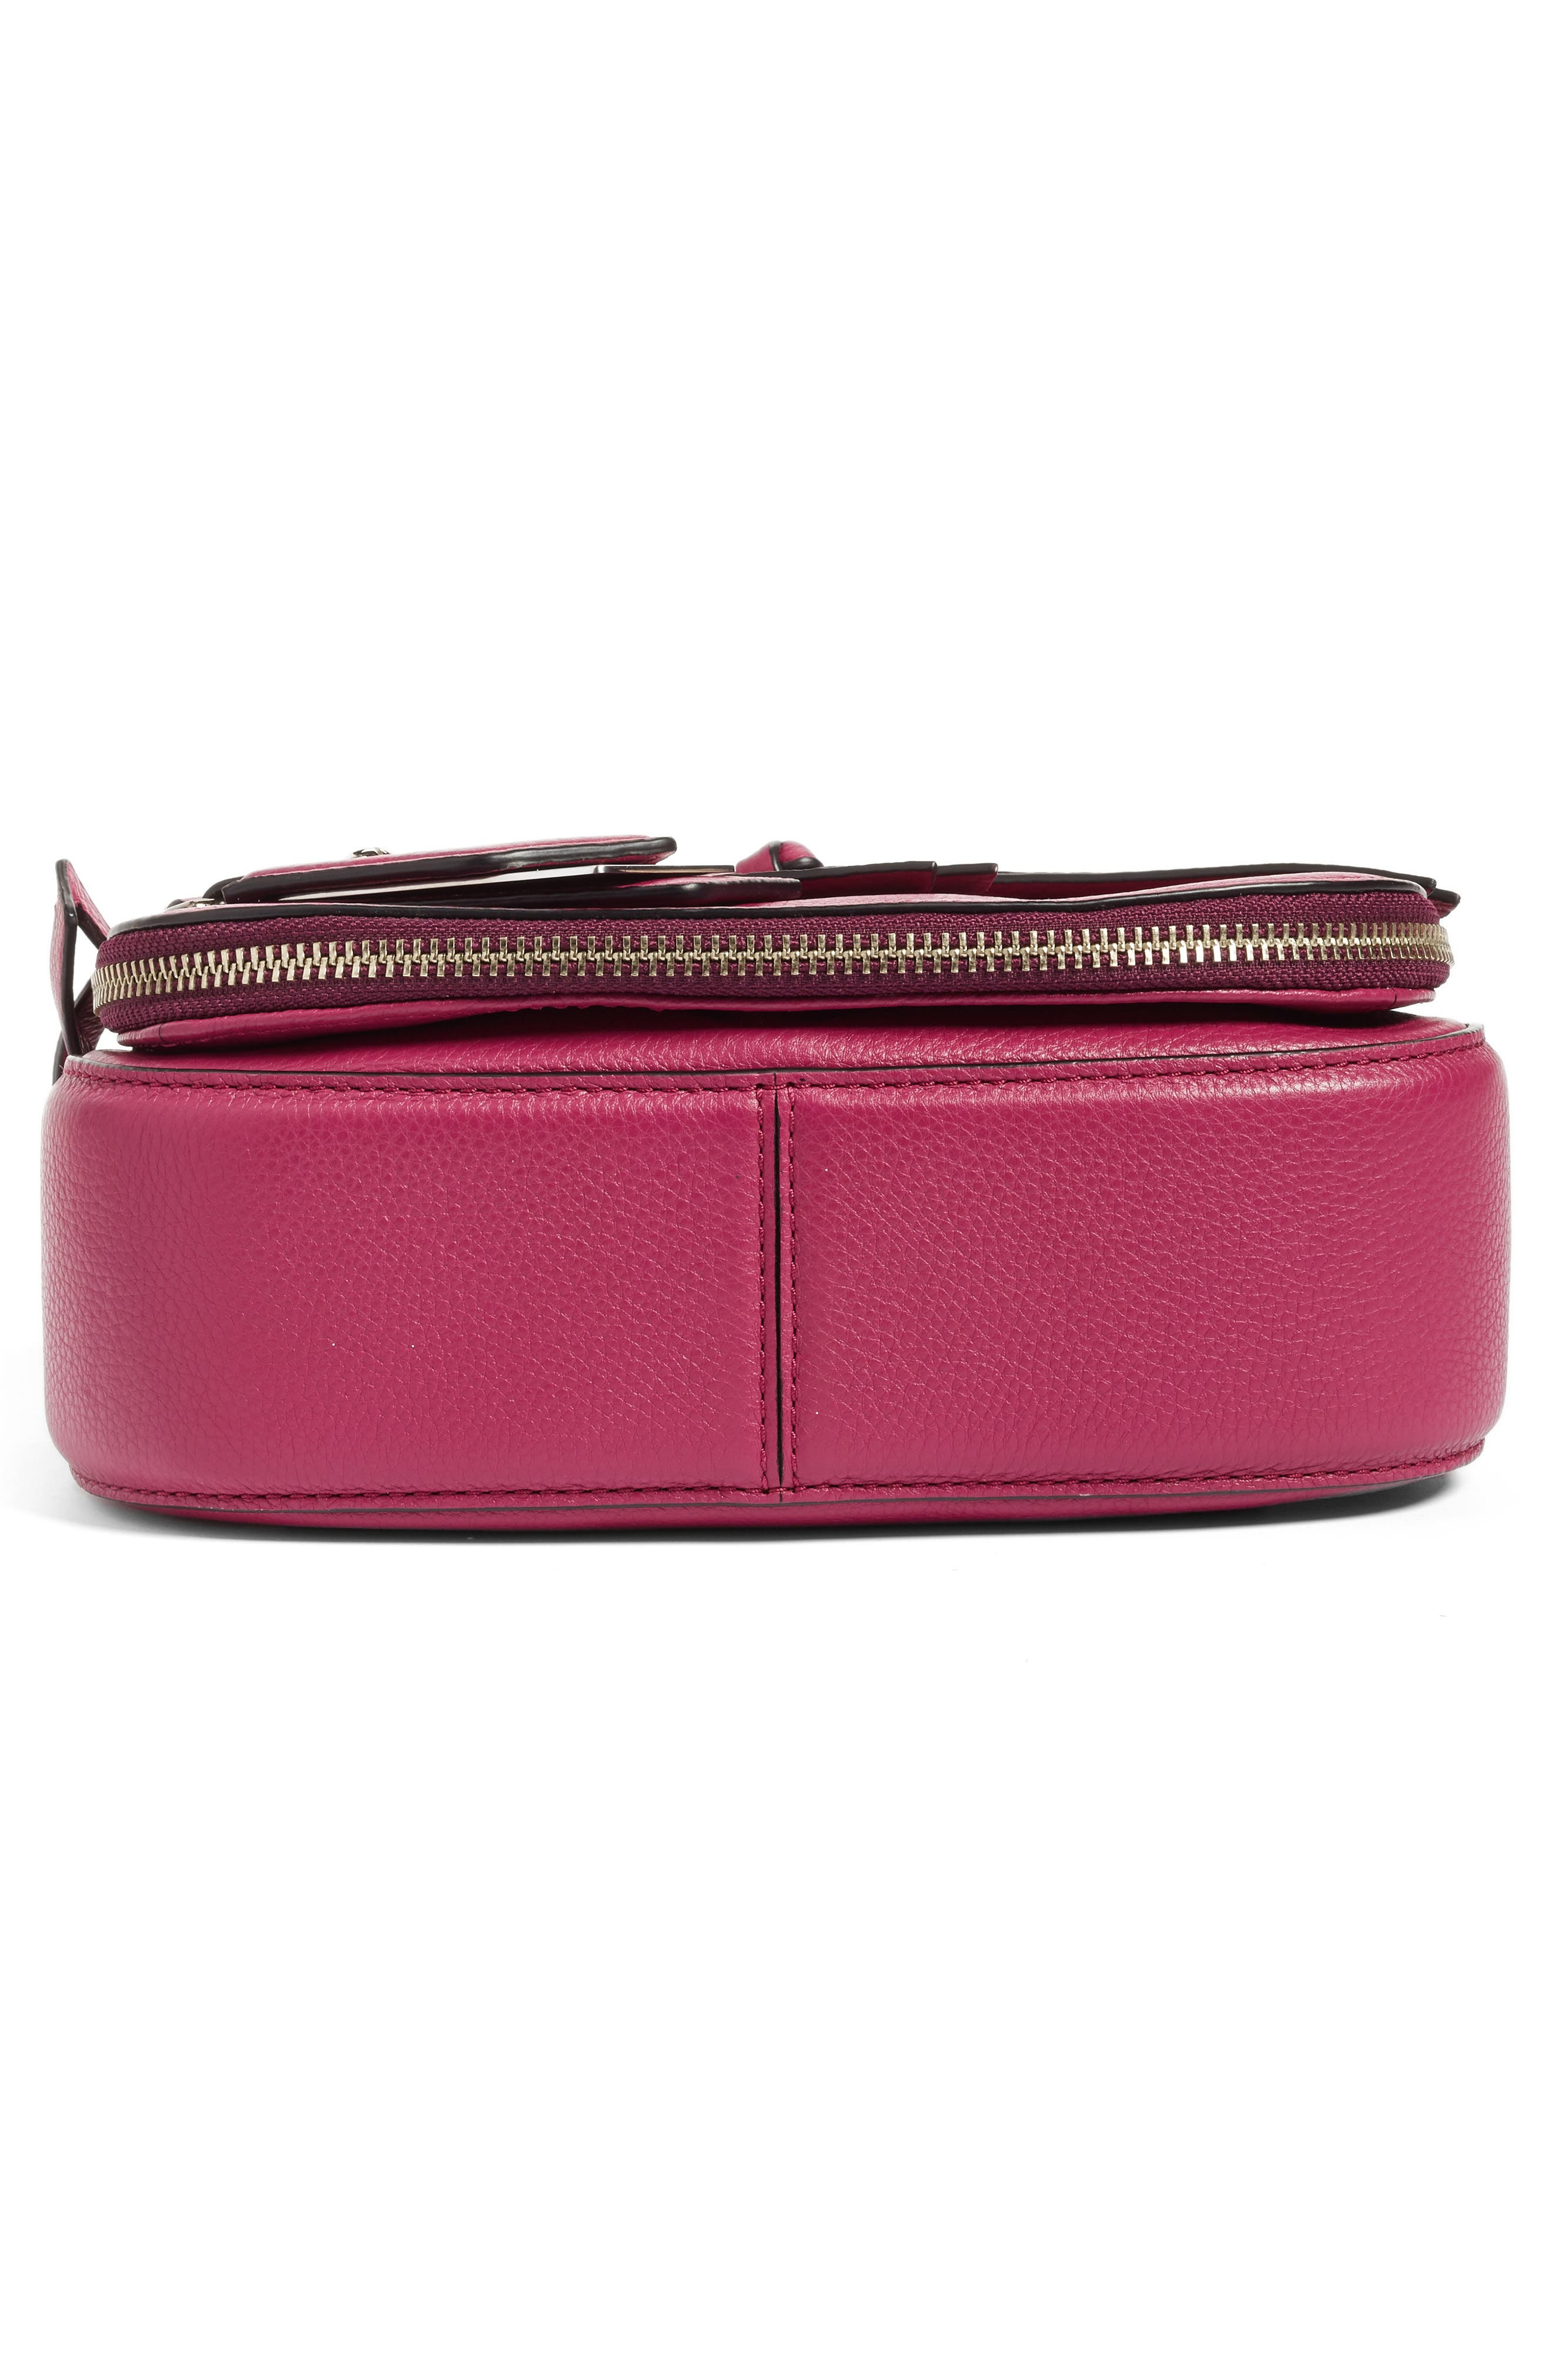 Small Recruit Nomad Pebbled Leather Crossbody Bag,                             Alternate thumbnail 85, color,